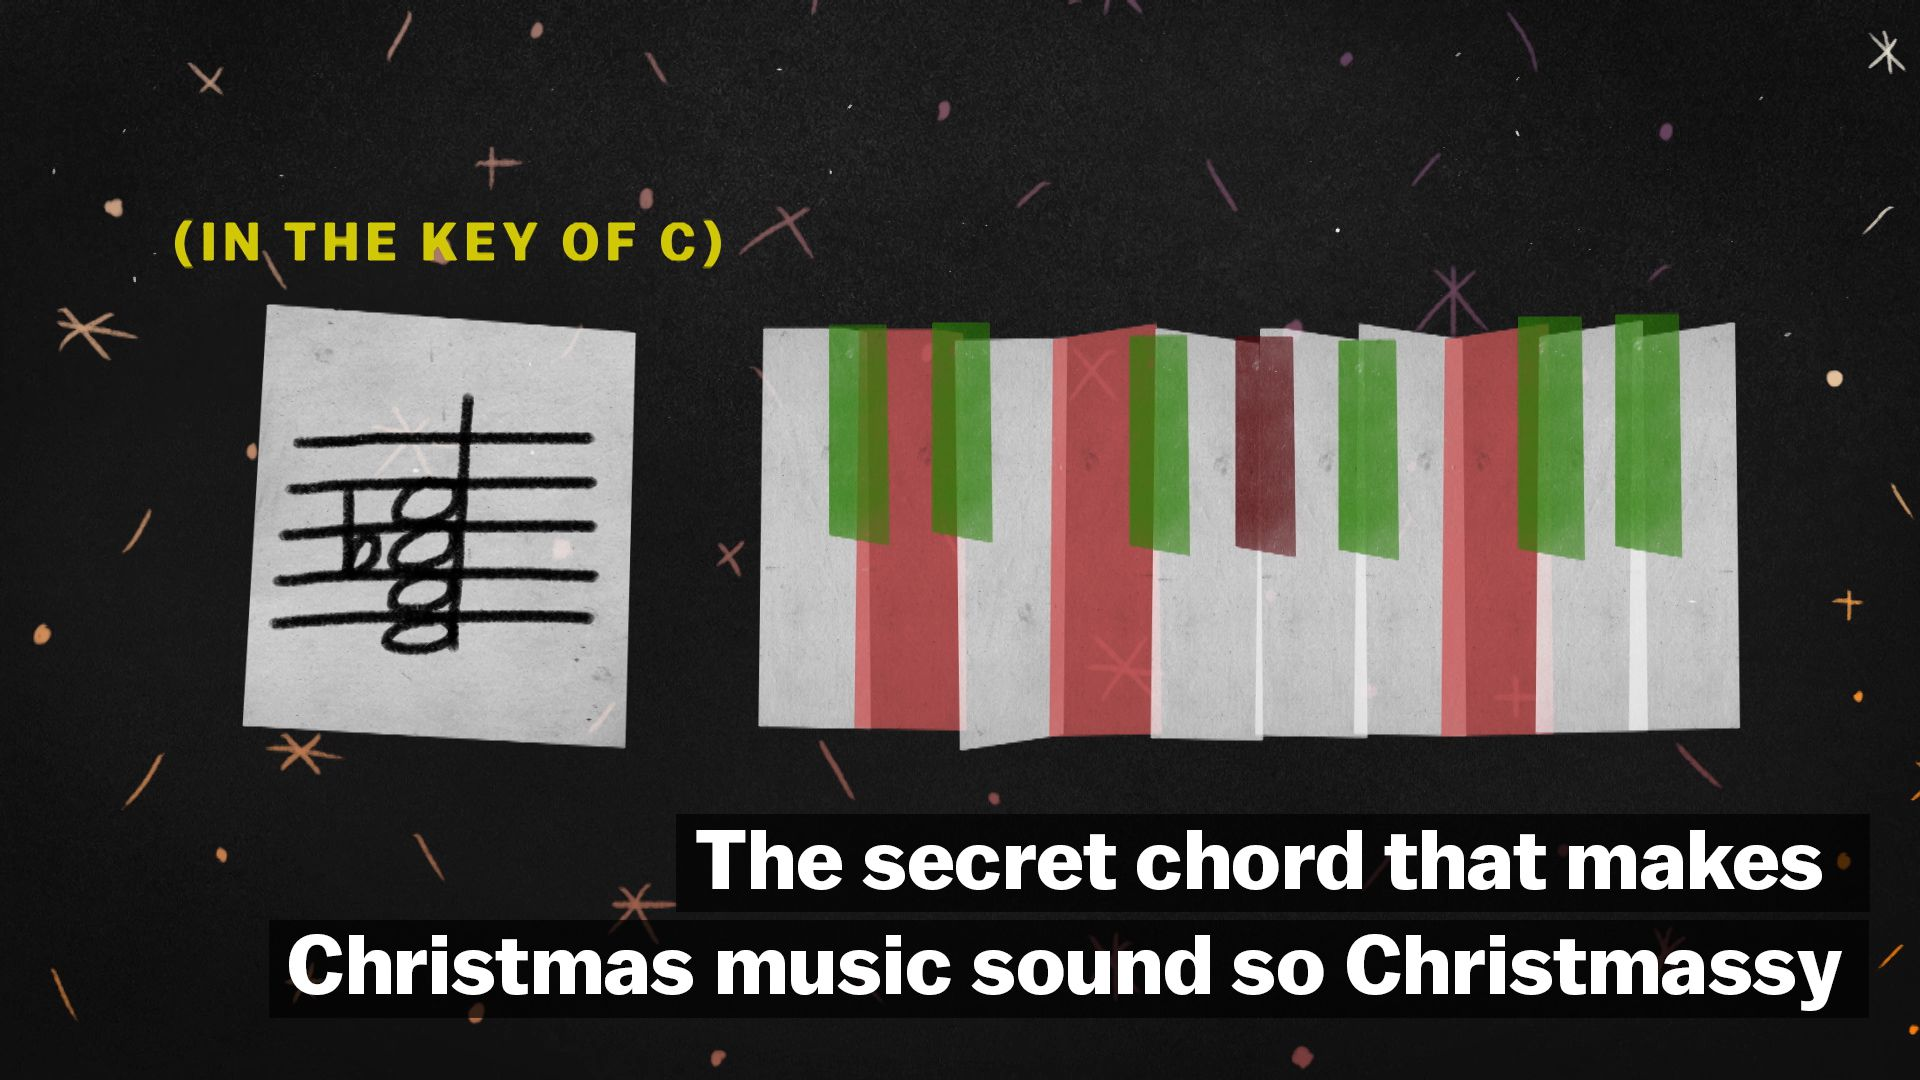 The secret chord that makes Christmas music sound so Christmassy - Vox